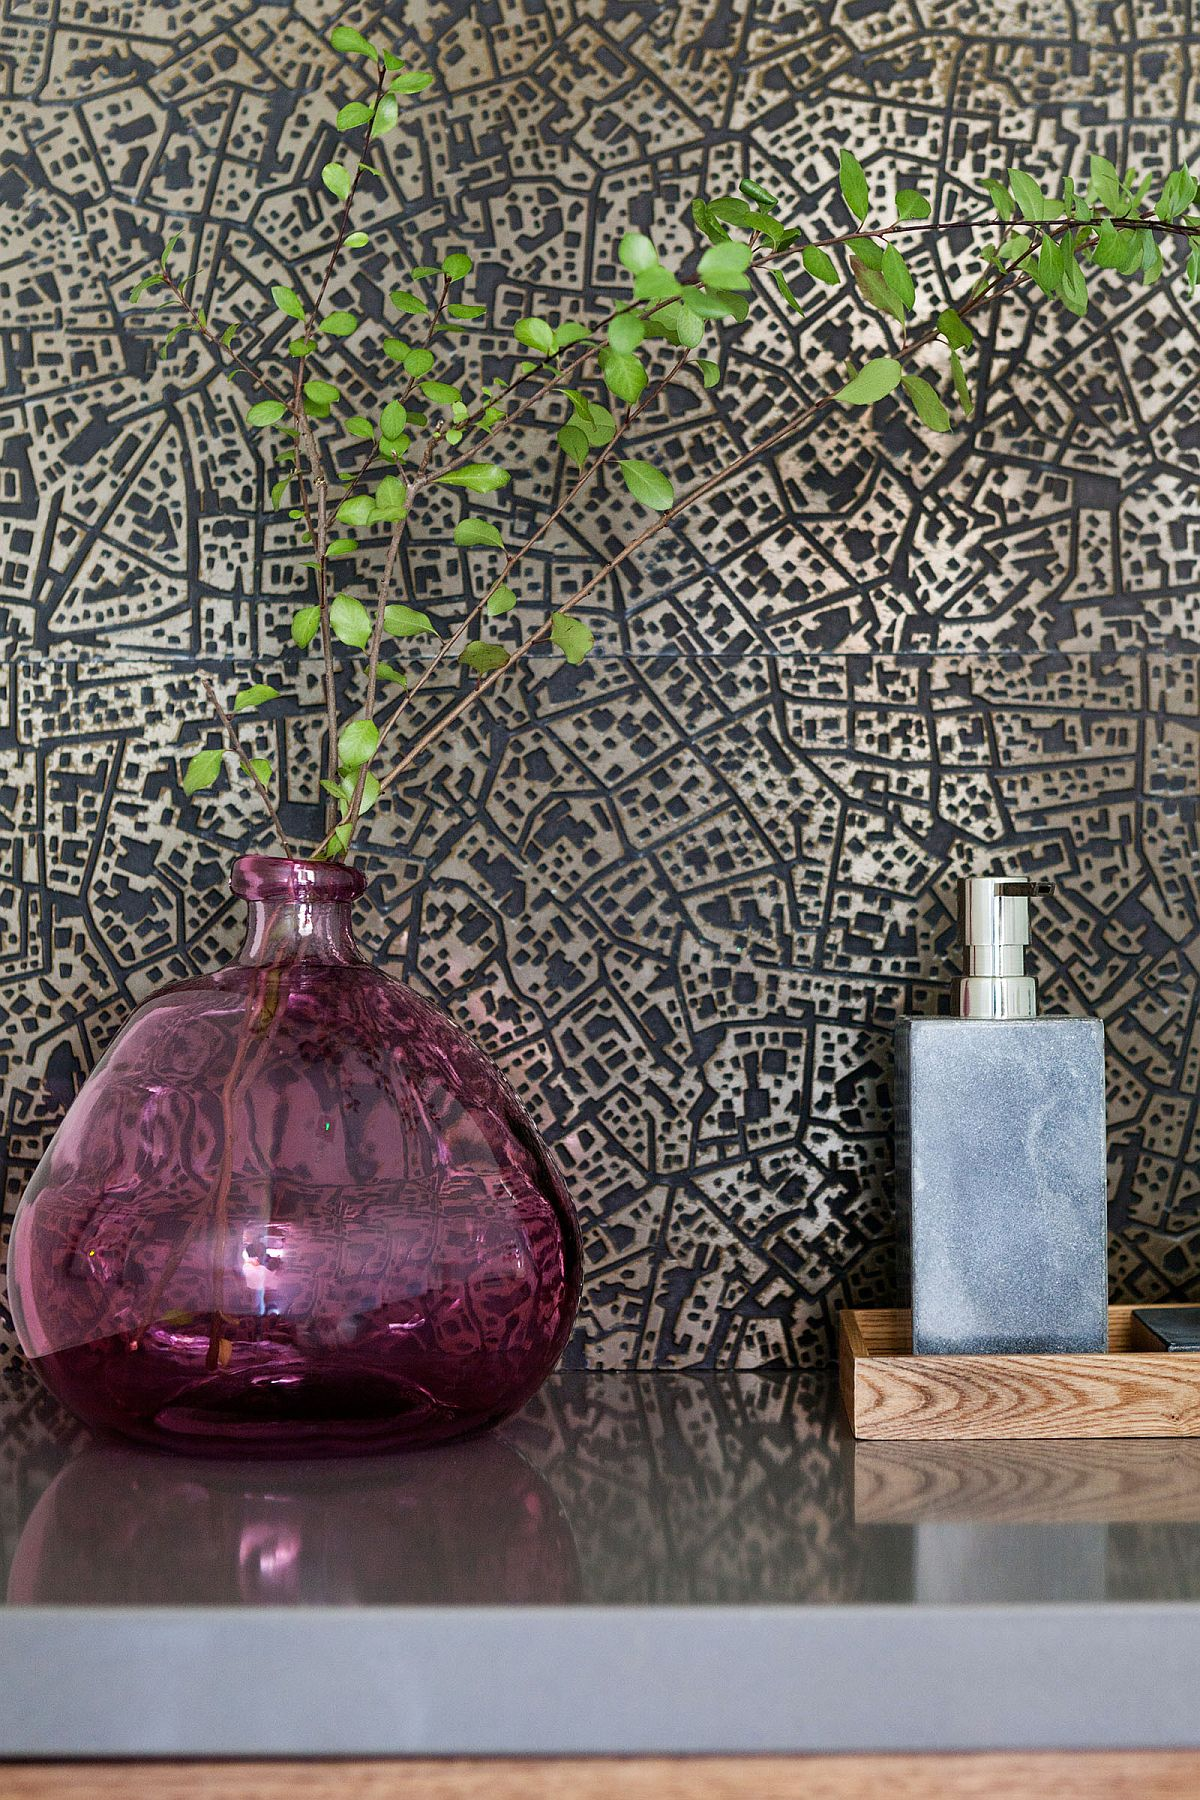 Find innovative ways to add greenery to the powder room using vases